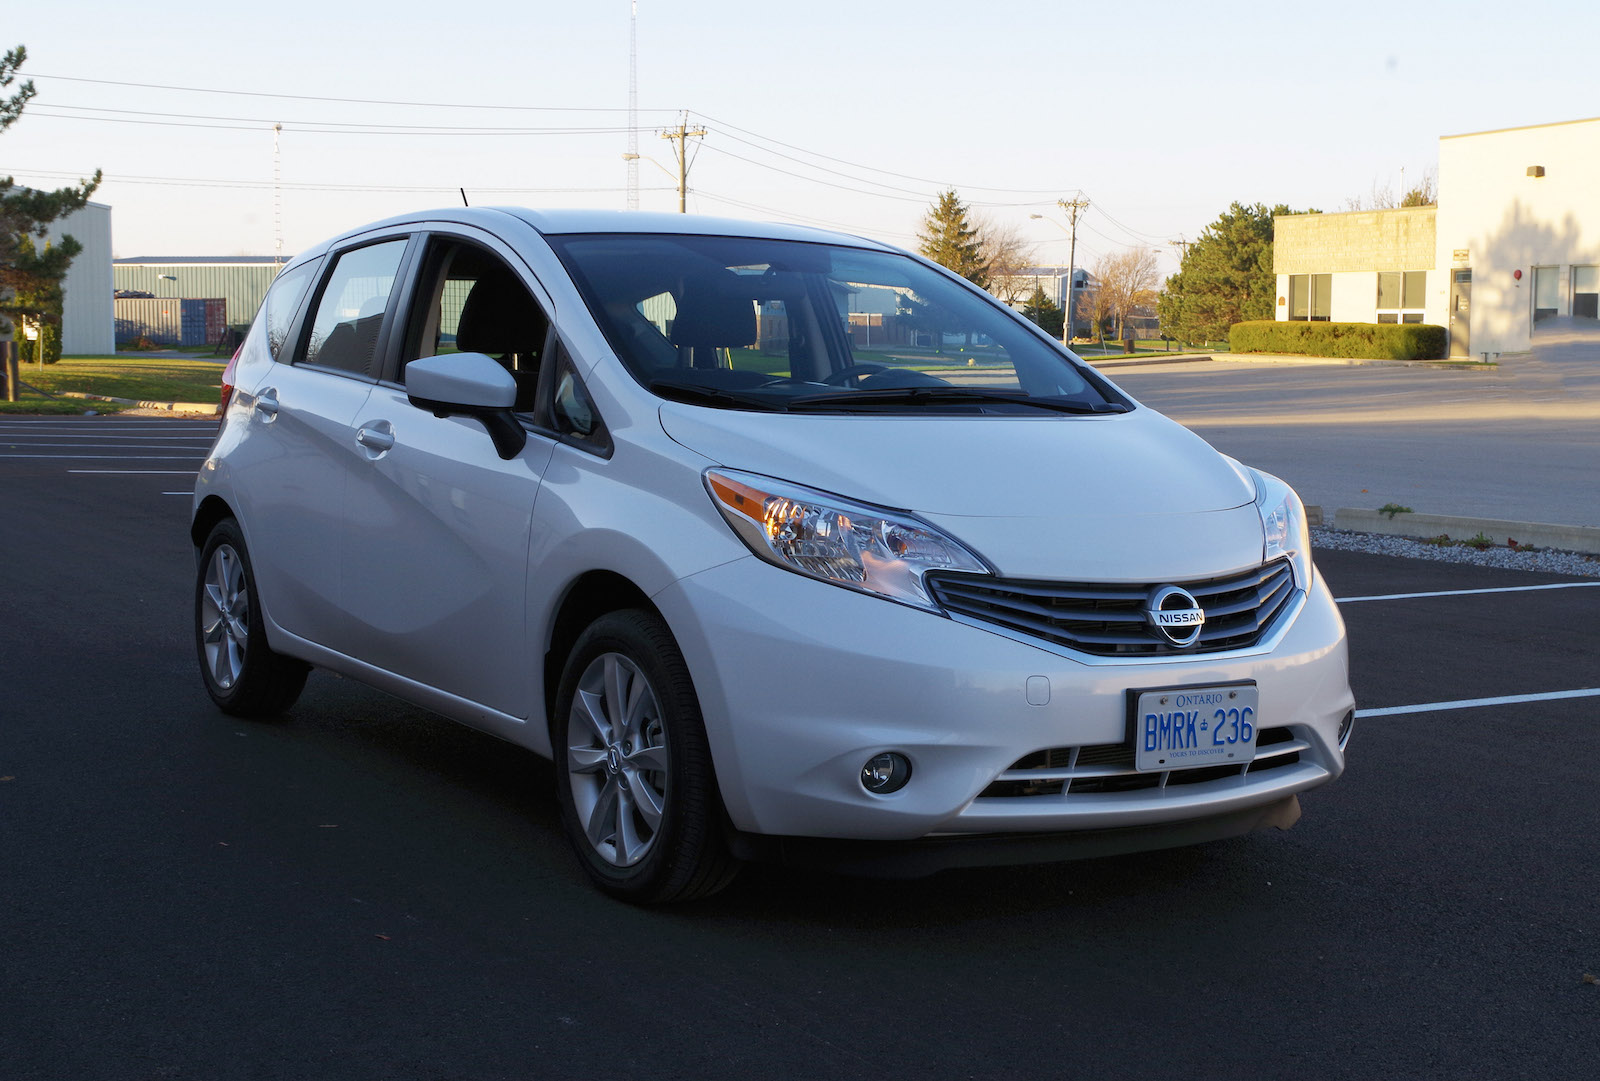 2014 nissan versa review ratings specs prices and photos html autos post. Black Bedroom Furniture Sets. Home Design Ideas